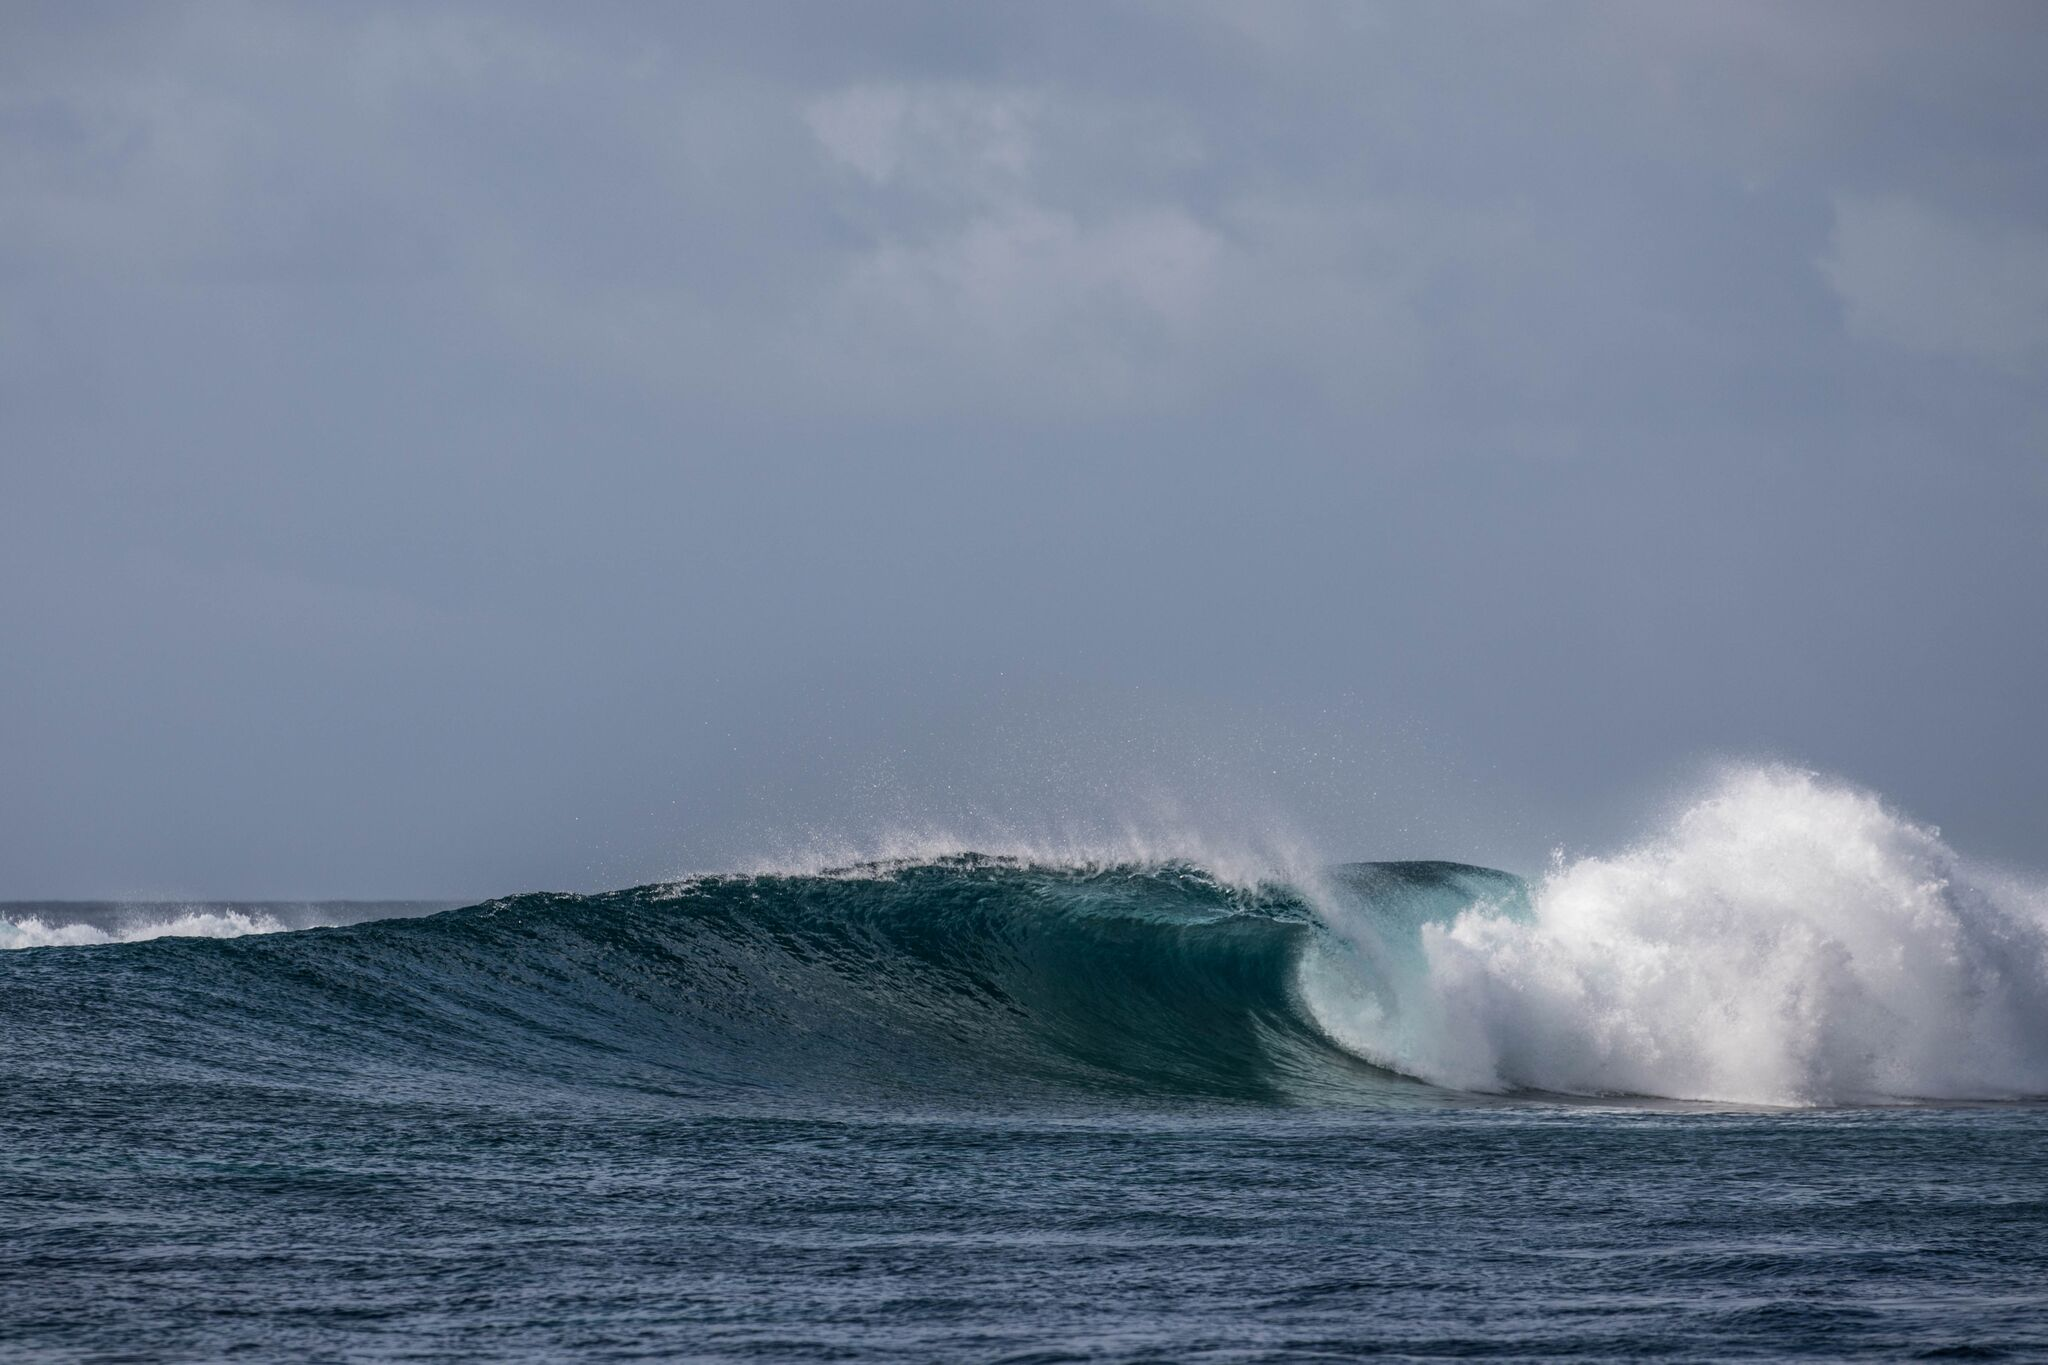 A nice empty slips through unridden at Sultans in early Sept. Photo - Andy Potts C/O The Perfect Wave